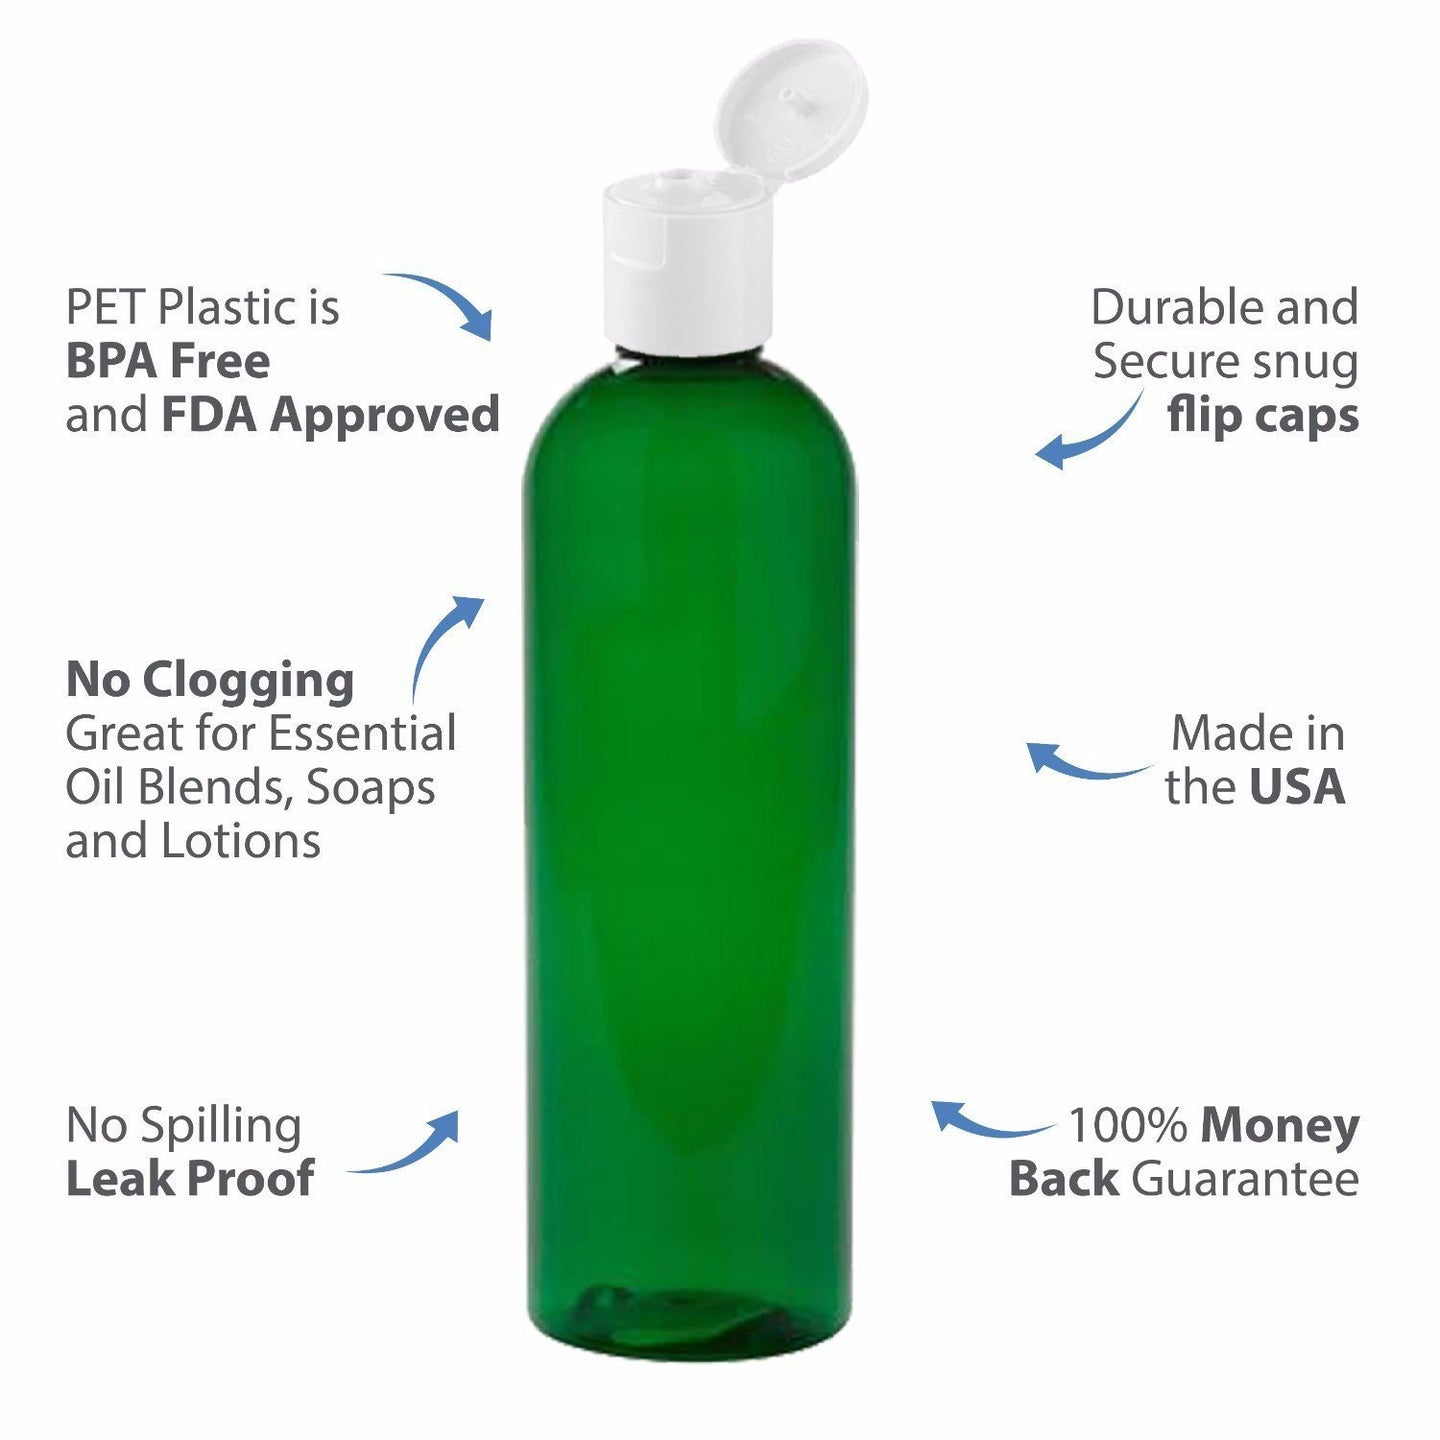 MoYo Natural Labs 8 oz Travel Bottle, Empty Travel Containers with Flip Caps, BPA Free PET Plastic Squeezable Toiletry/Cosmetic Bottle (1 pack, Forest Green)